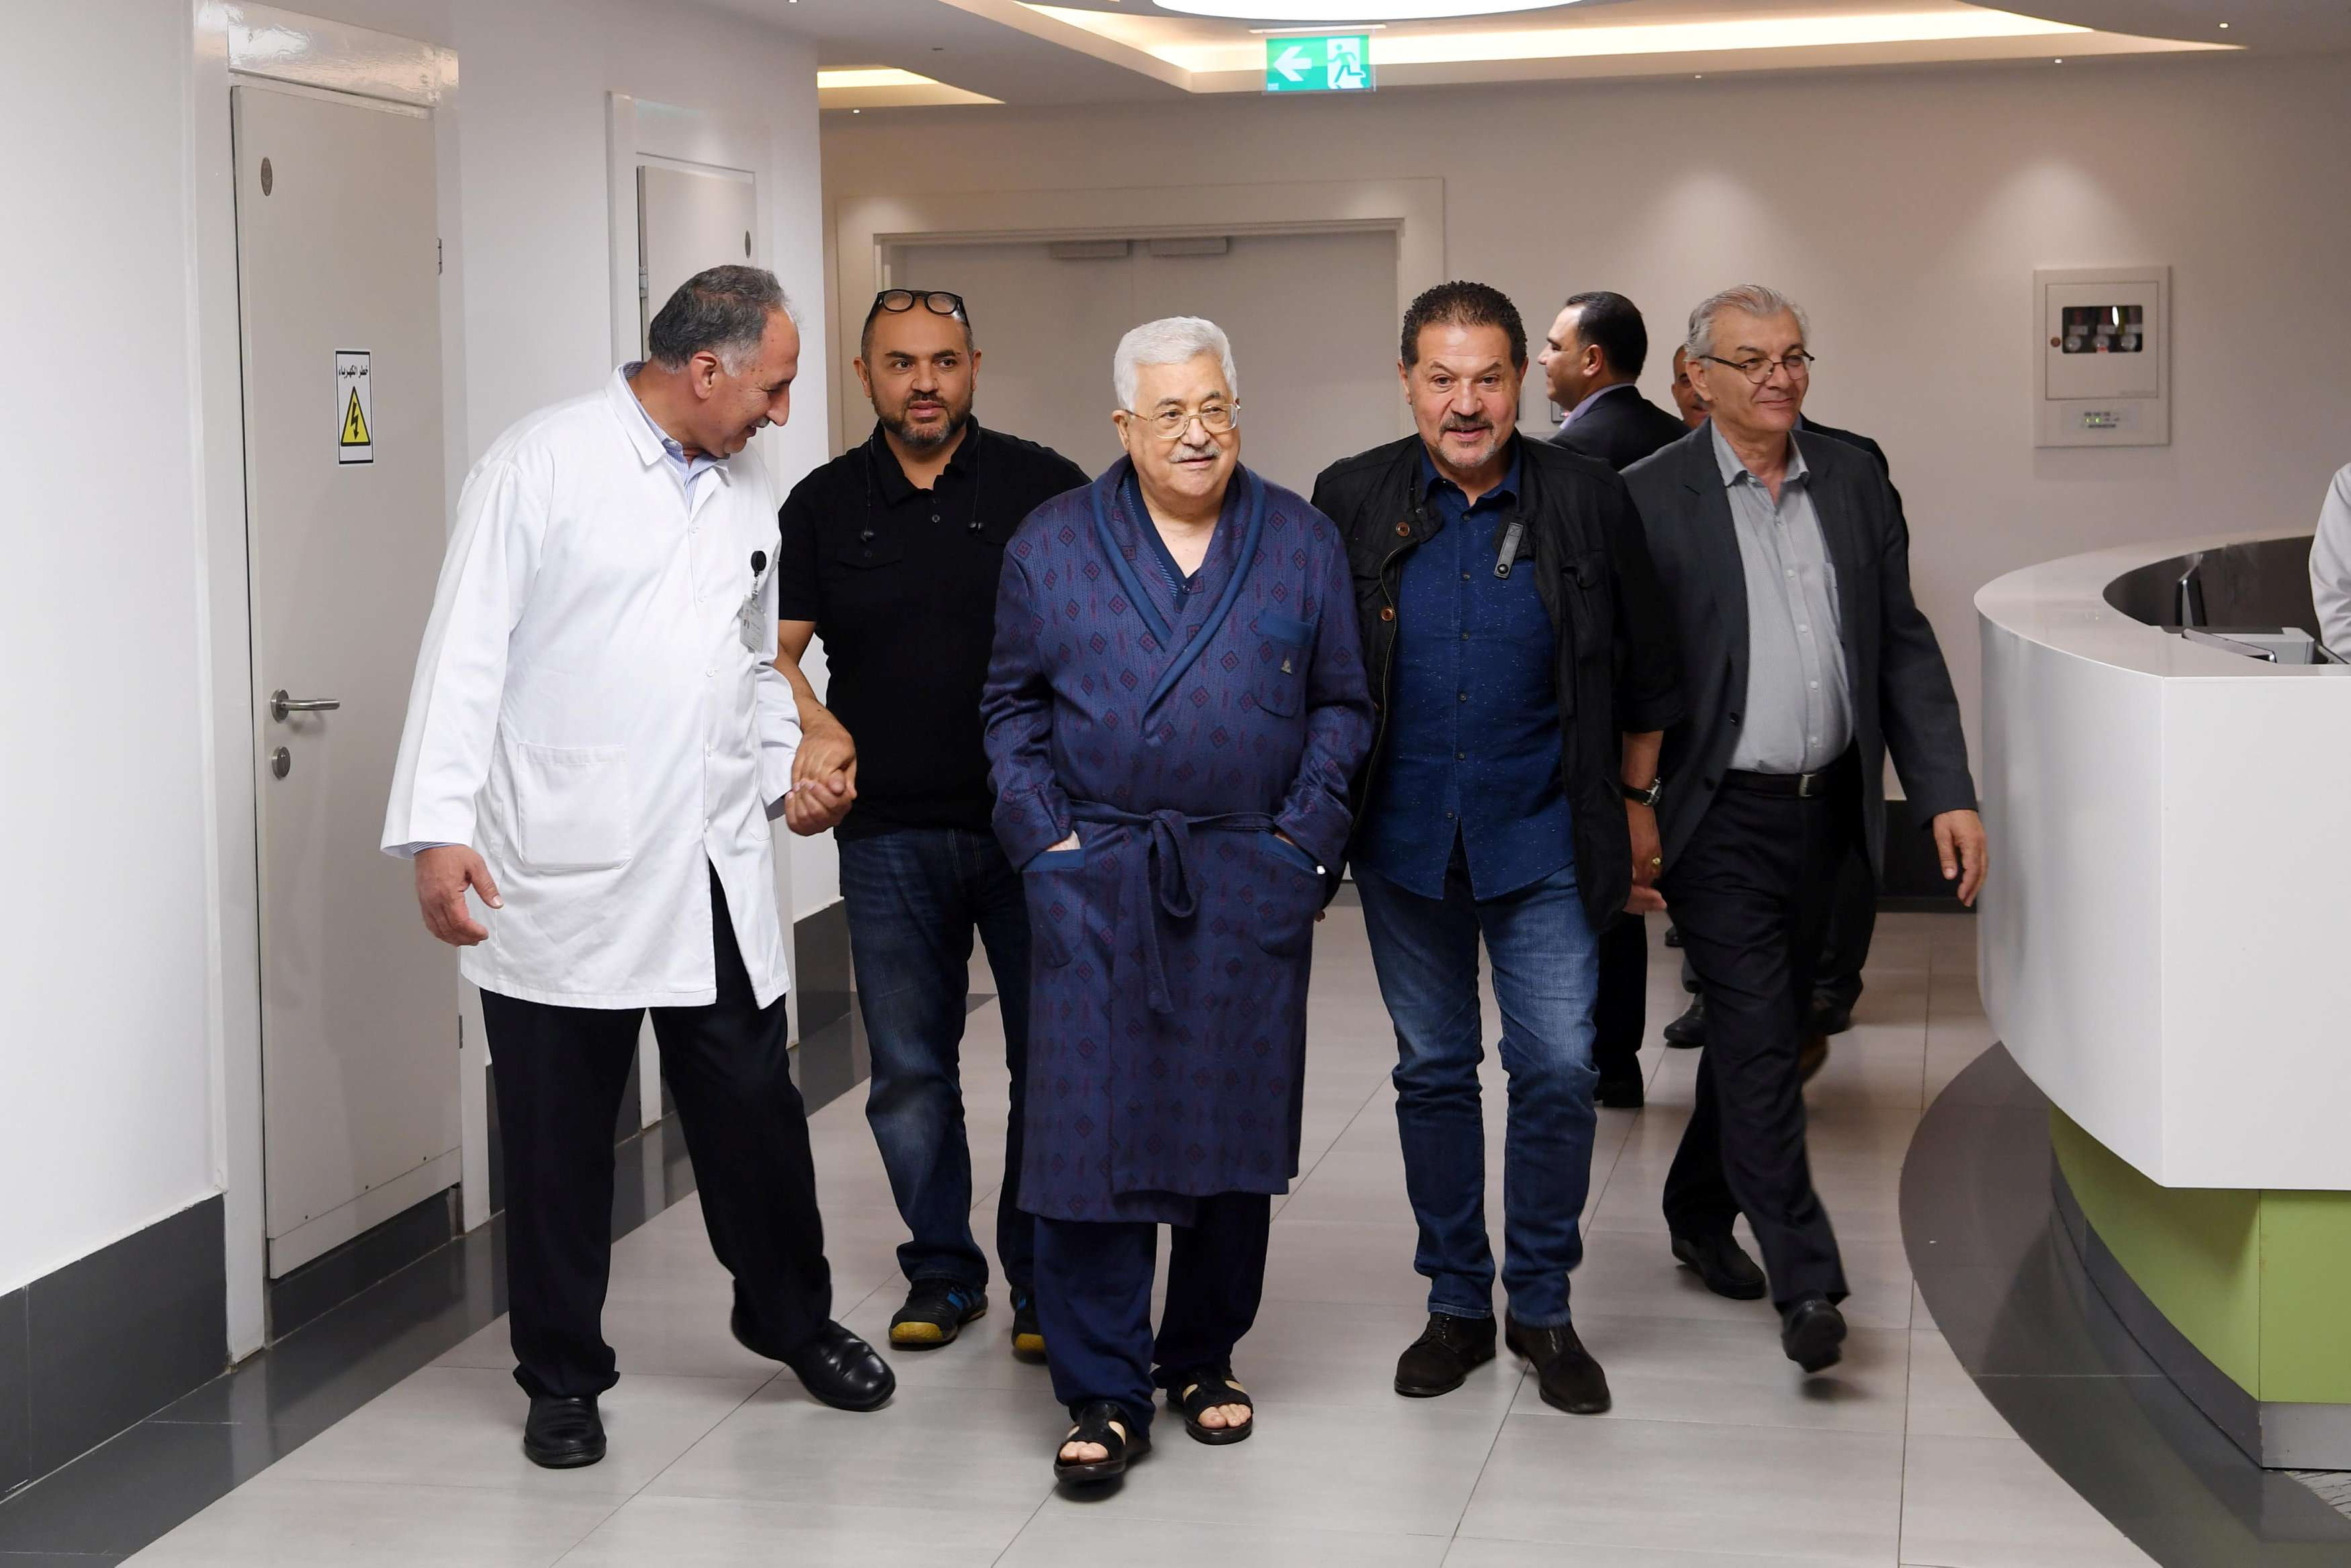 Palestinian President Mahmoud Abbas walks inside a hospital in Ramallah in the occupied West Bank, on May 21. (Palestinian President Office)